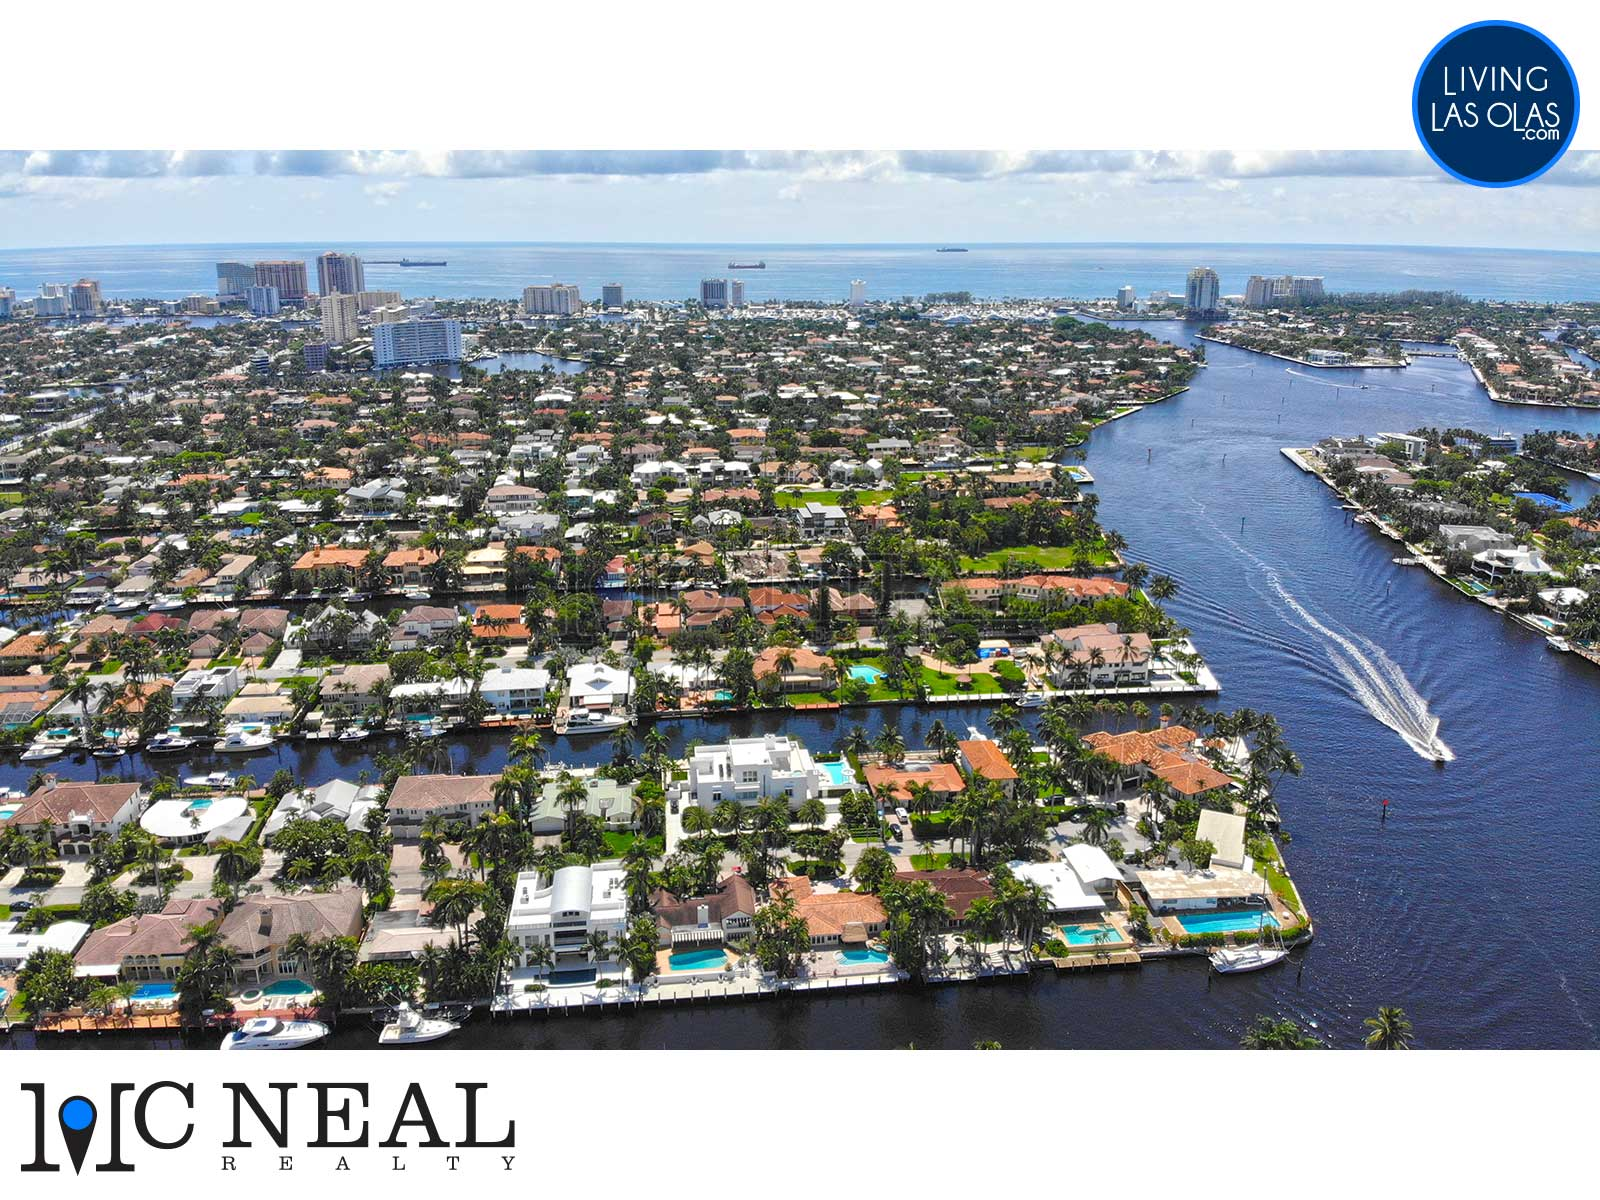 Las Olas Isles Homes Real Estate 02